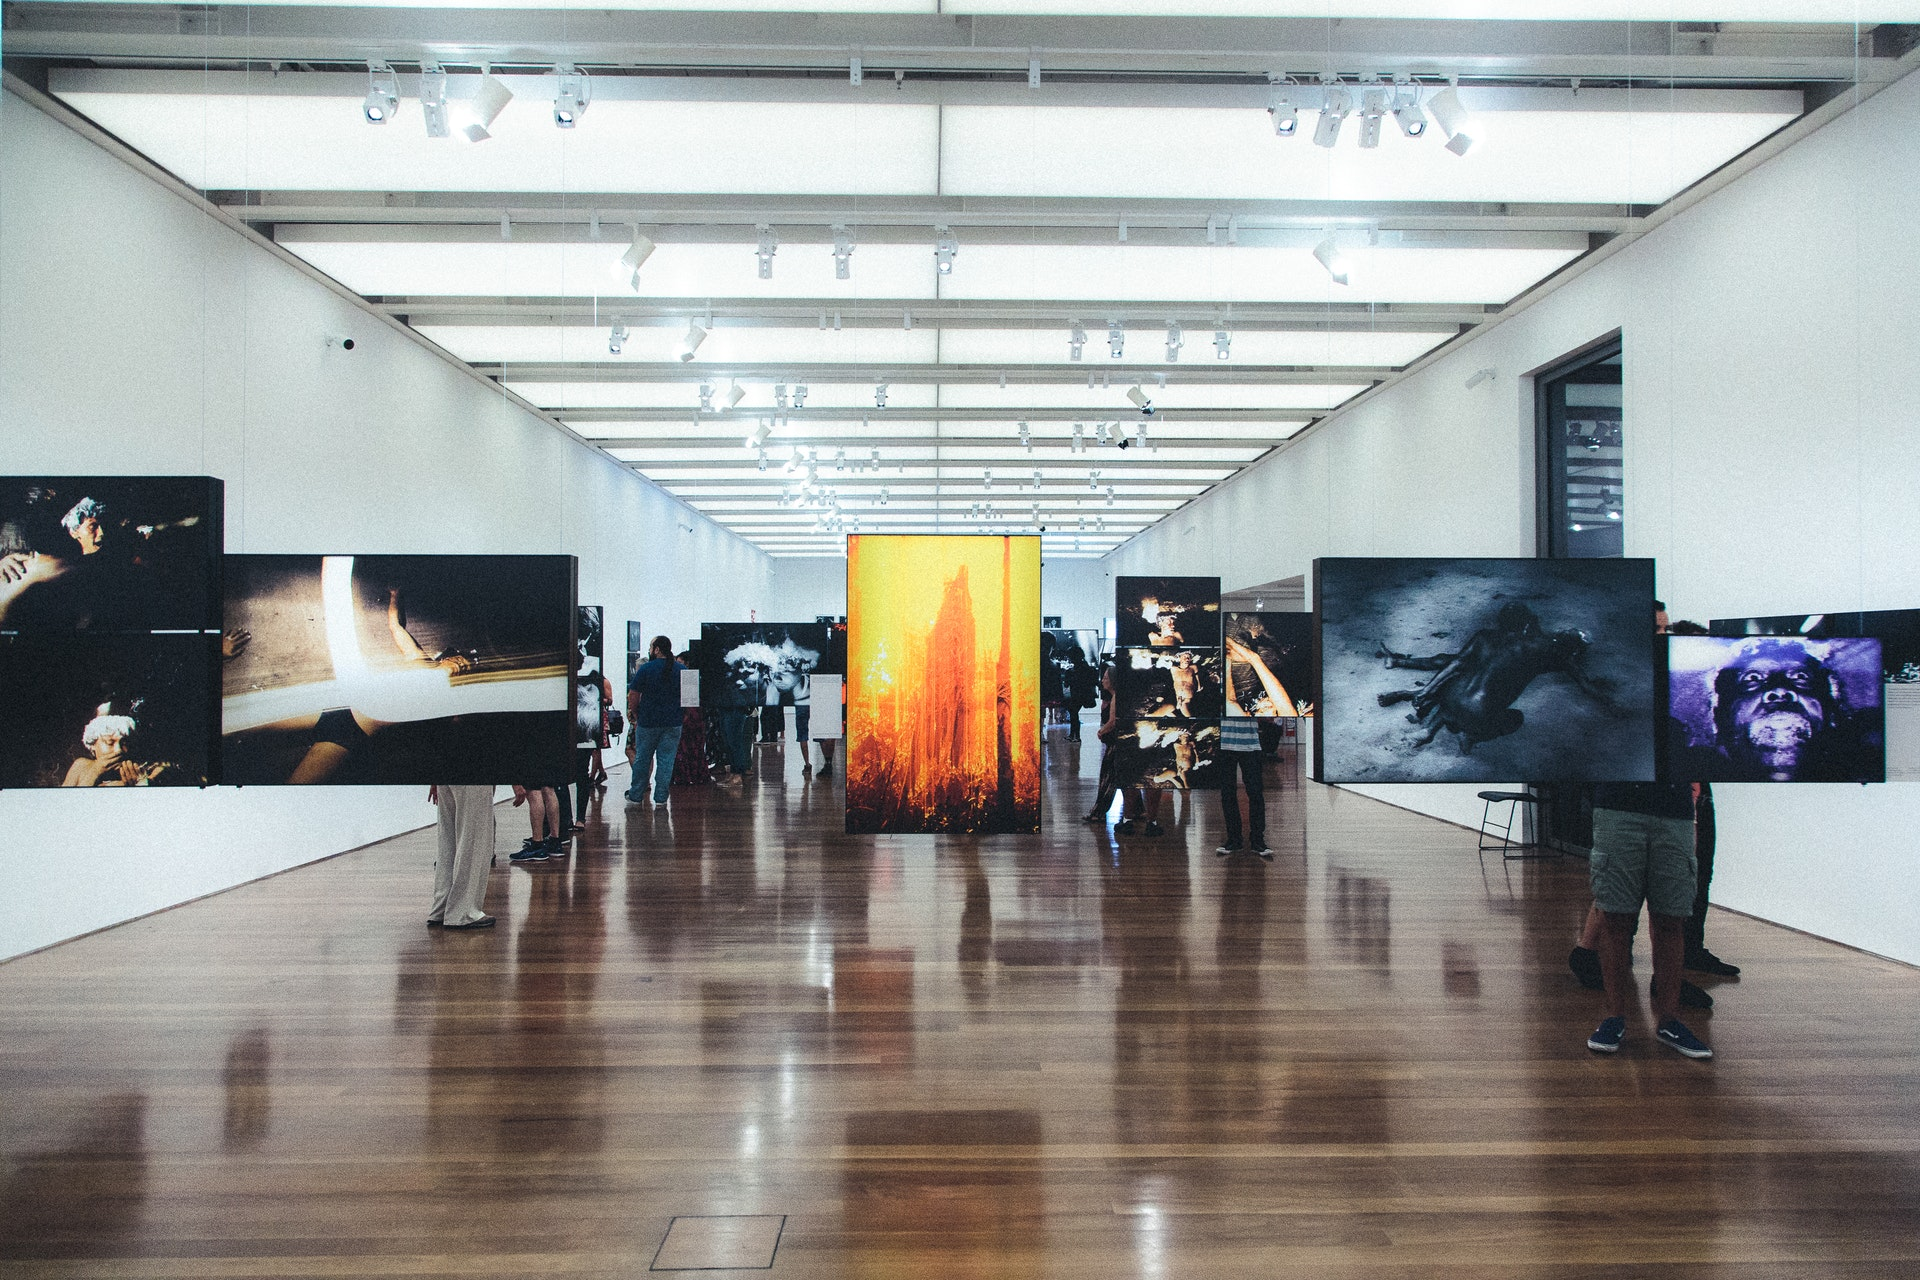 State of art: 6 exhibitions to catch in KL this October 2019